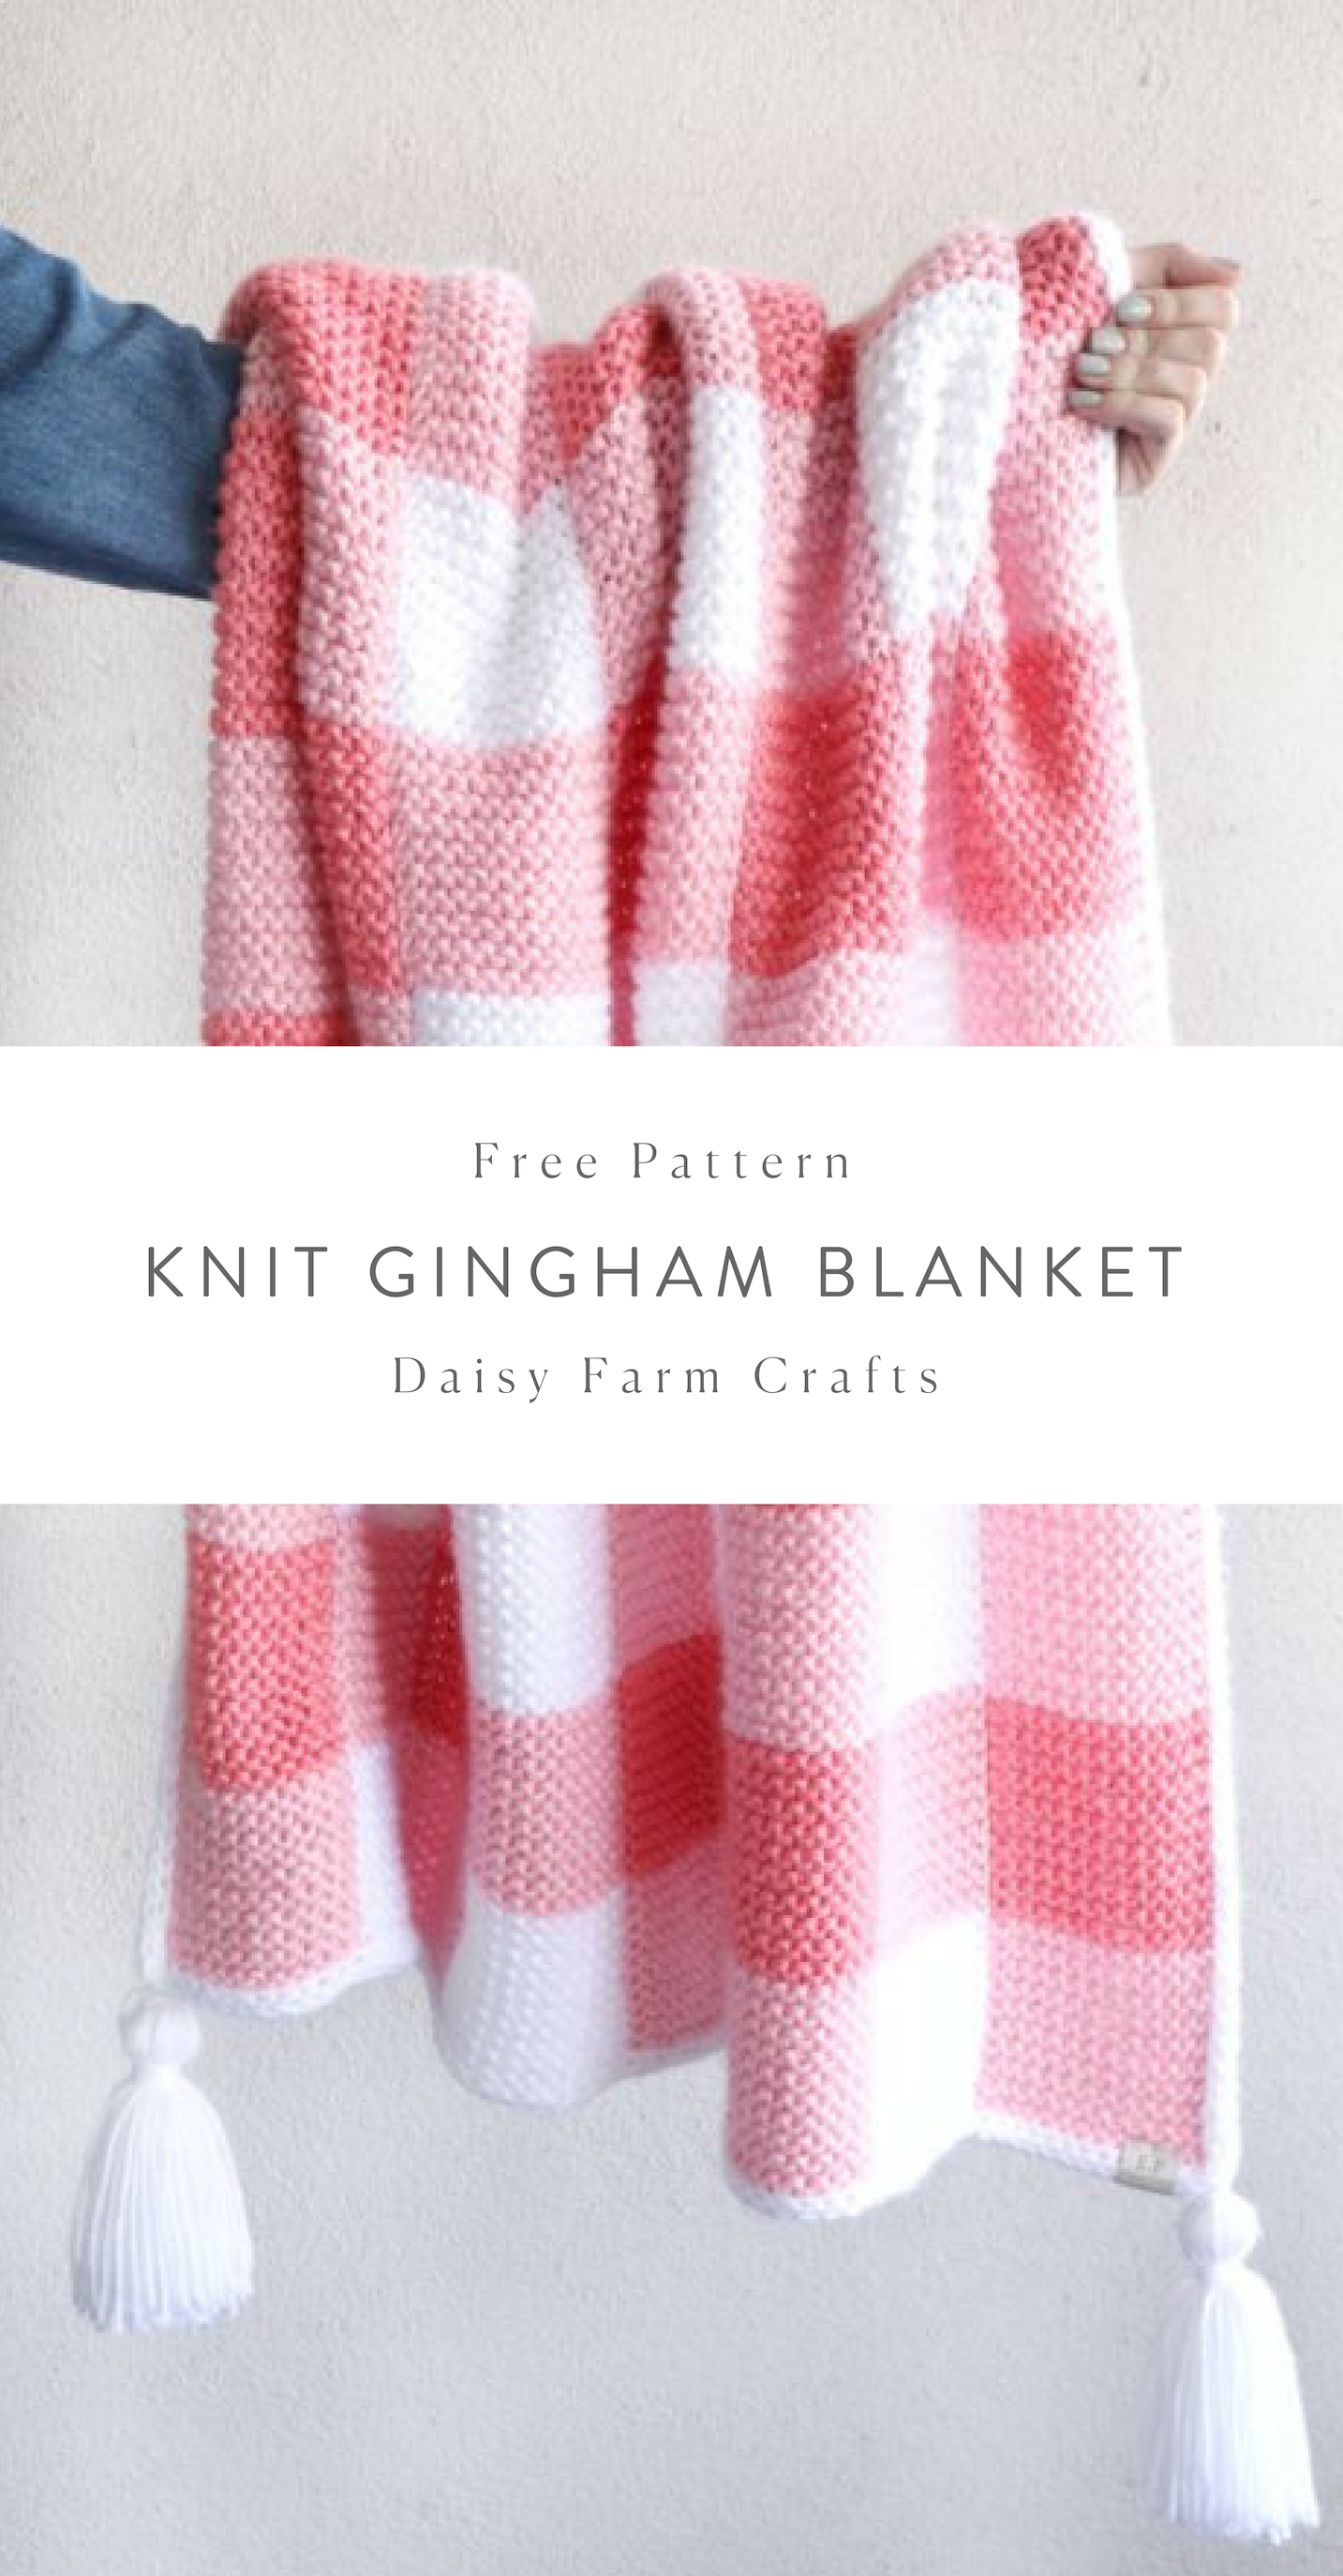 Free Pattern - Knit Gingham Blanket #knitting